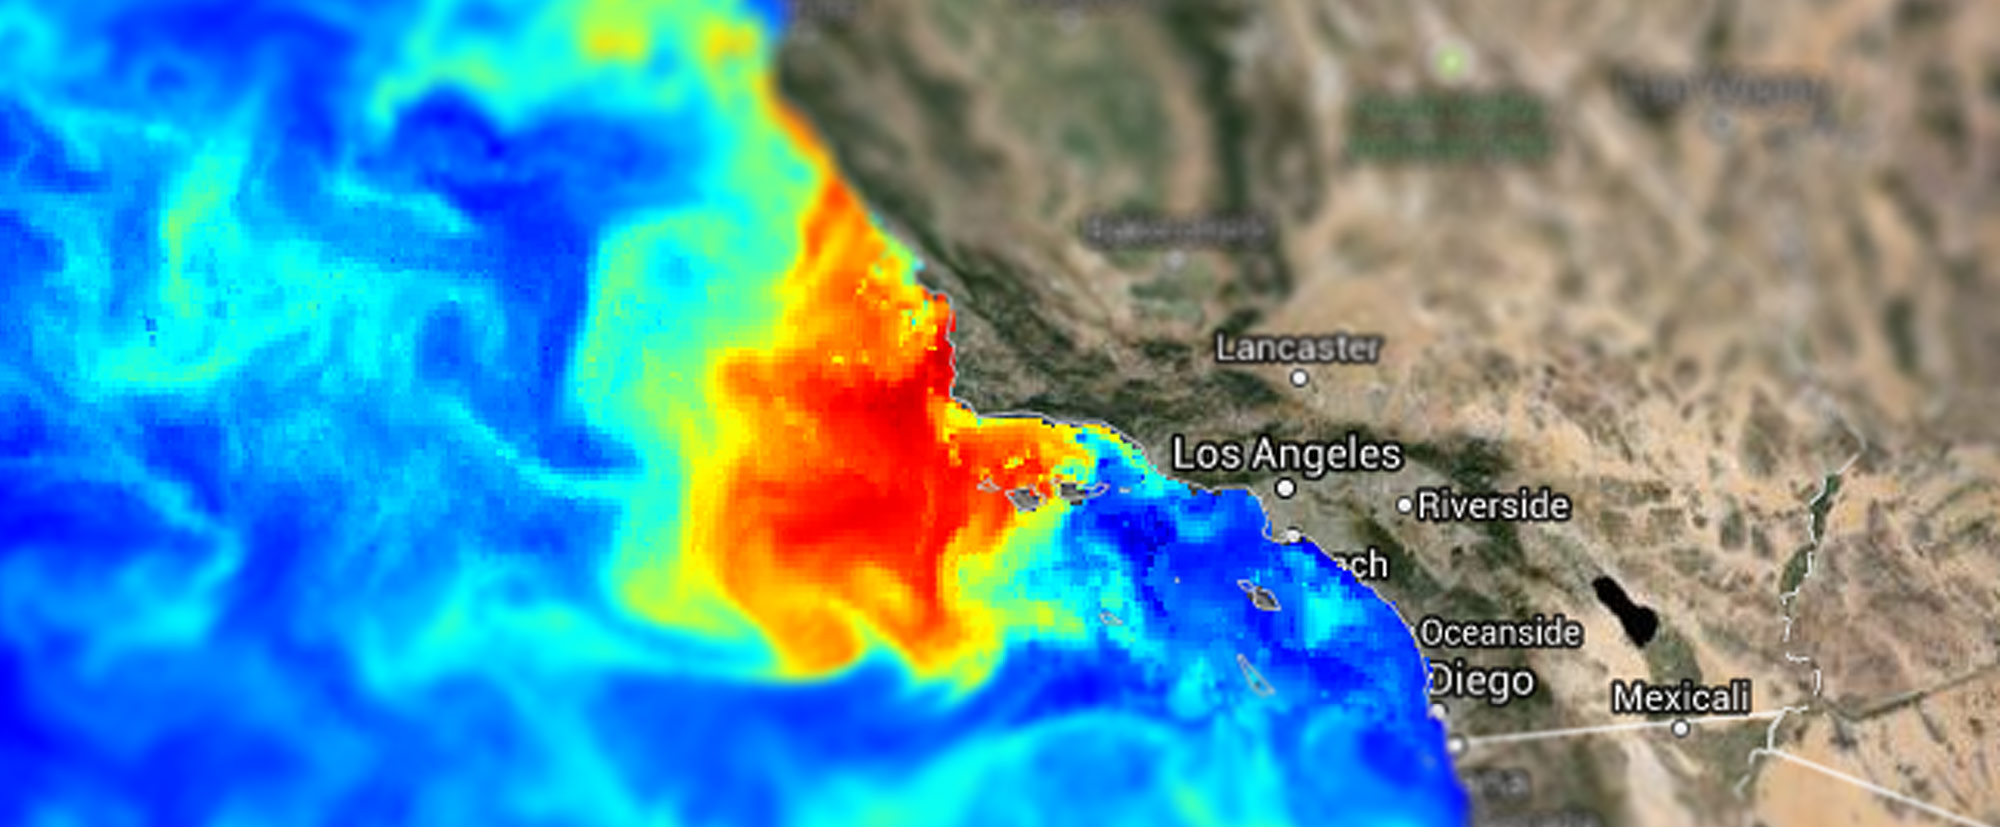 an animated image showing a 2017 HAB off the coast of California